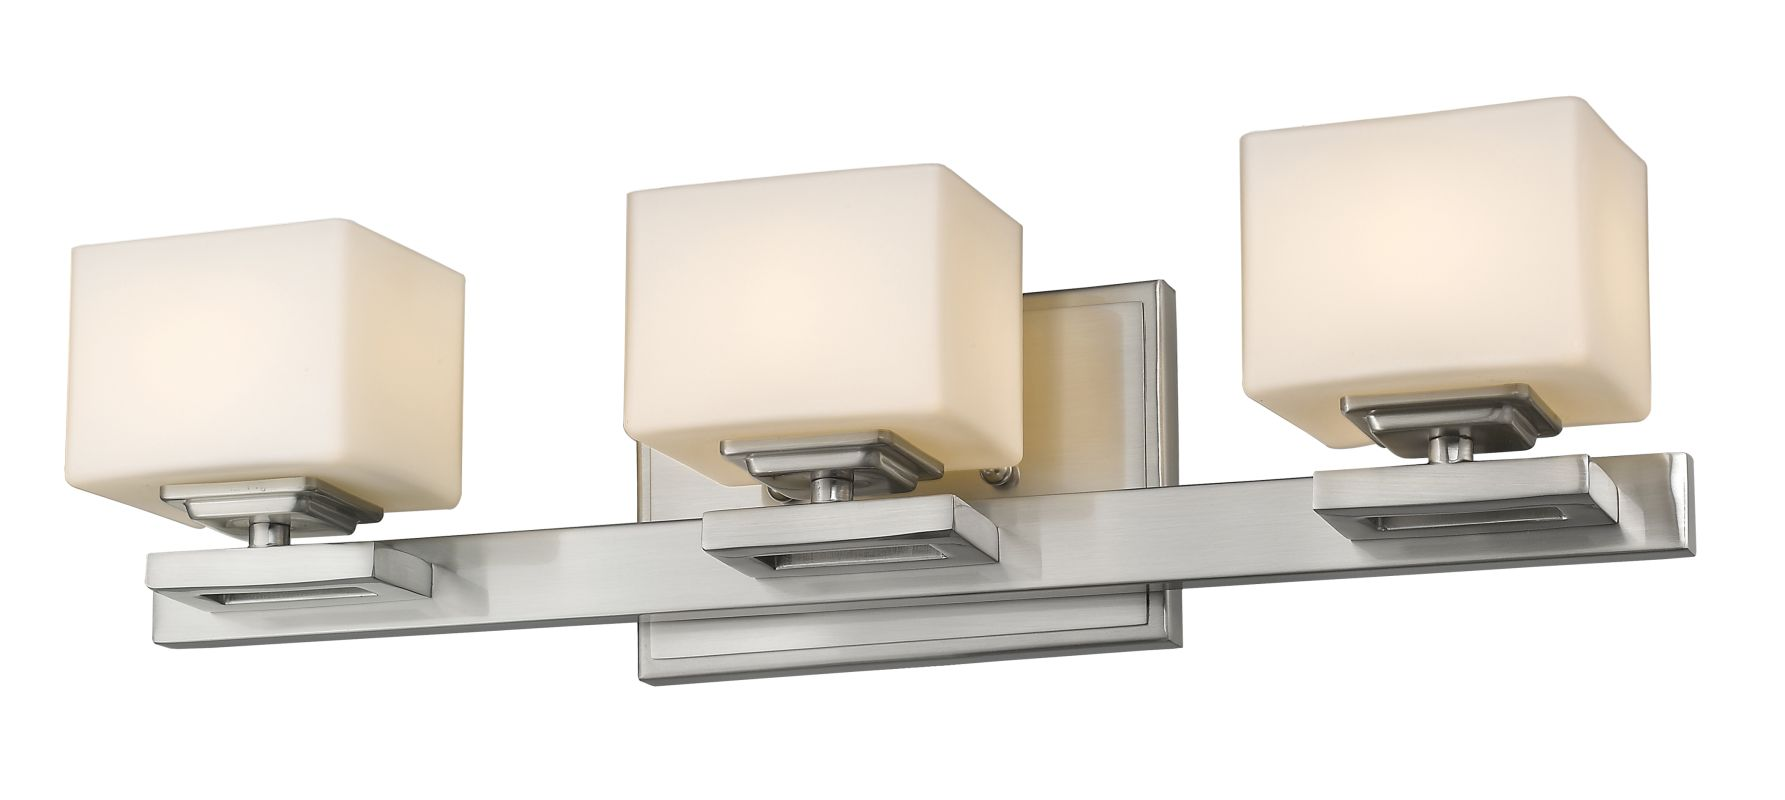 Z-Lite 1914-3V Cuvier 3 Light Bathroom Vanity Fixture Brushed Nickel